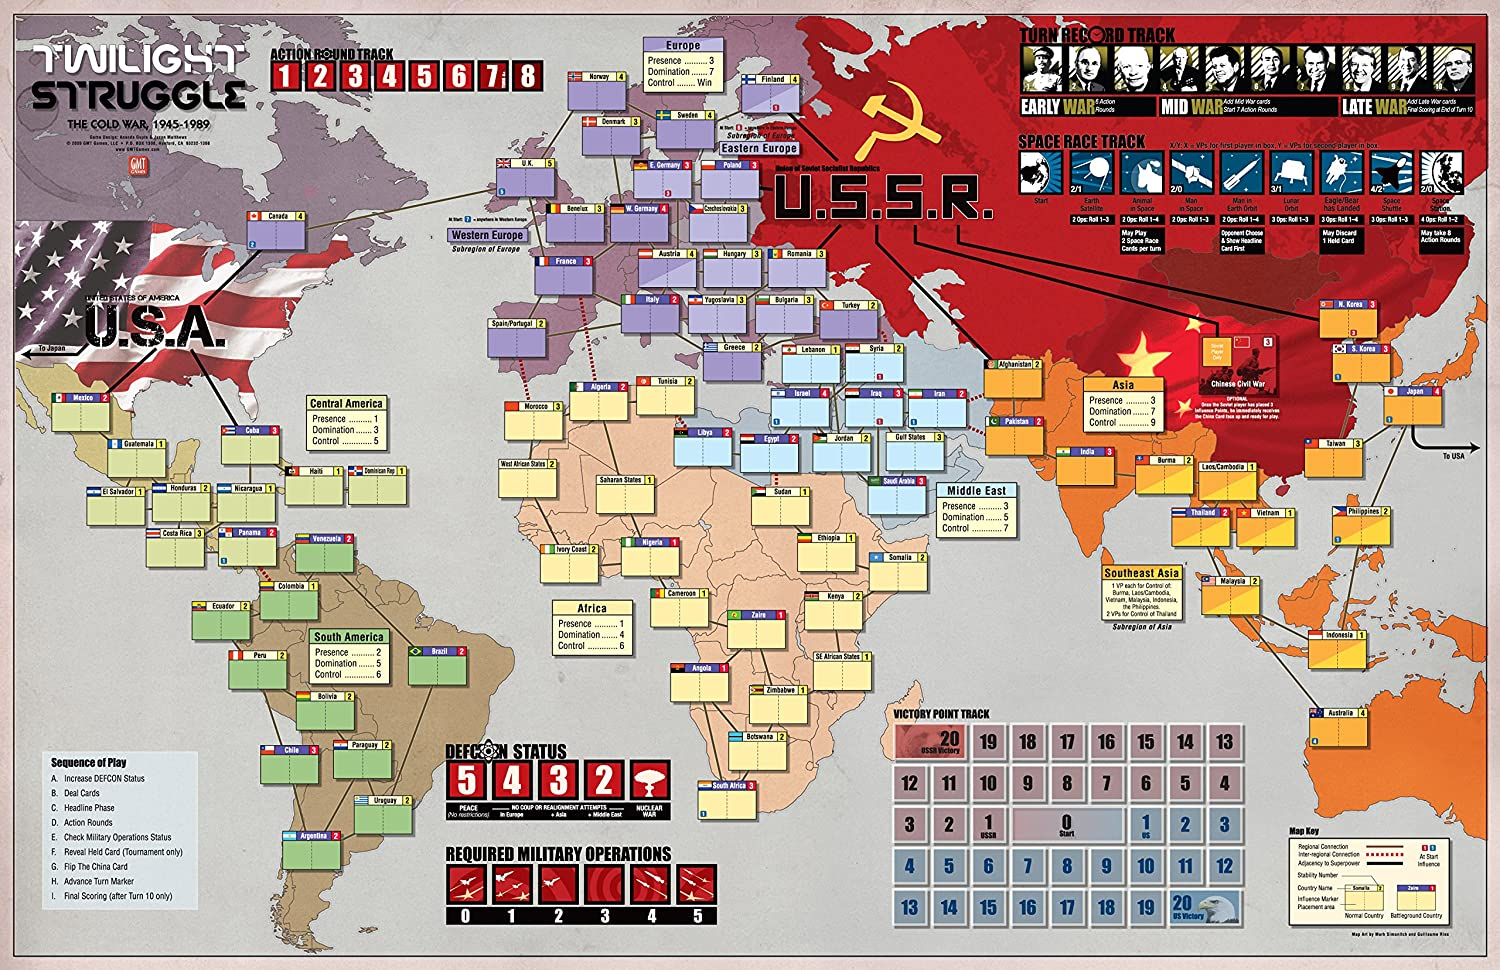 Image result for twilight struggle